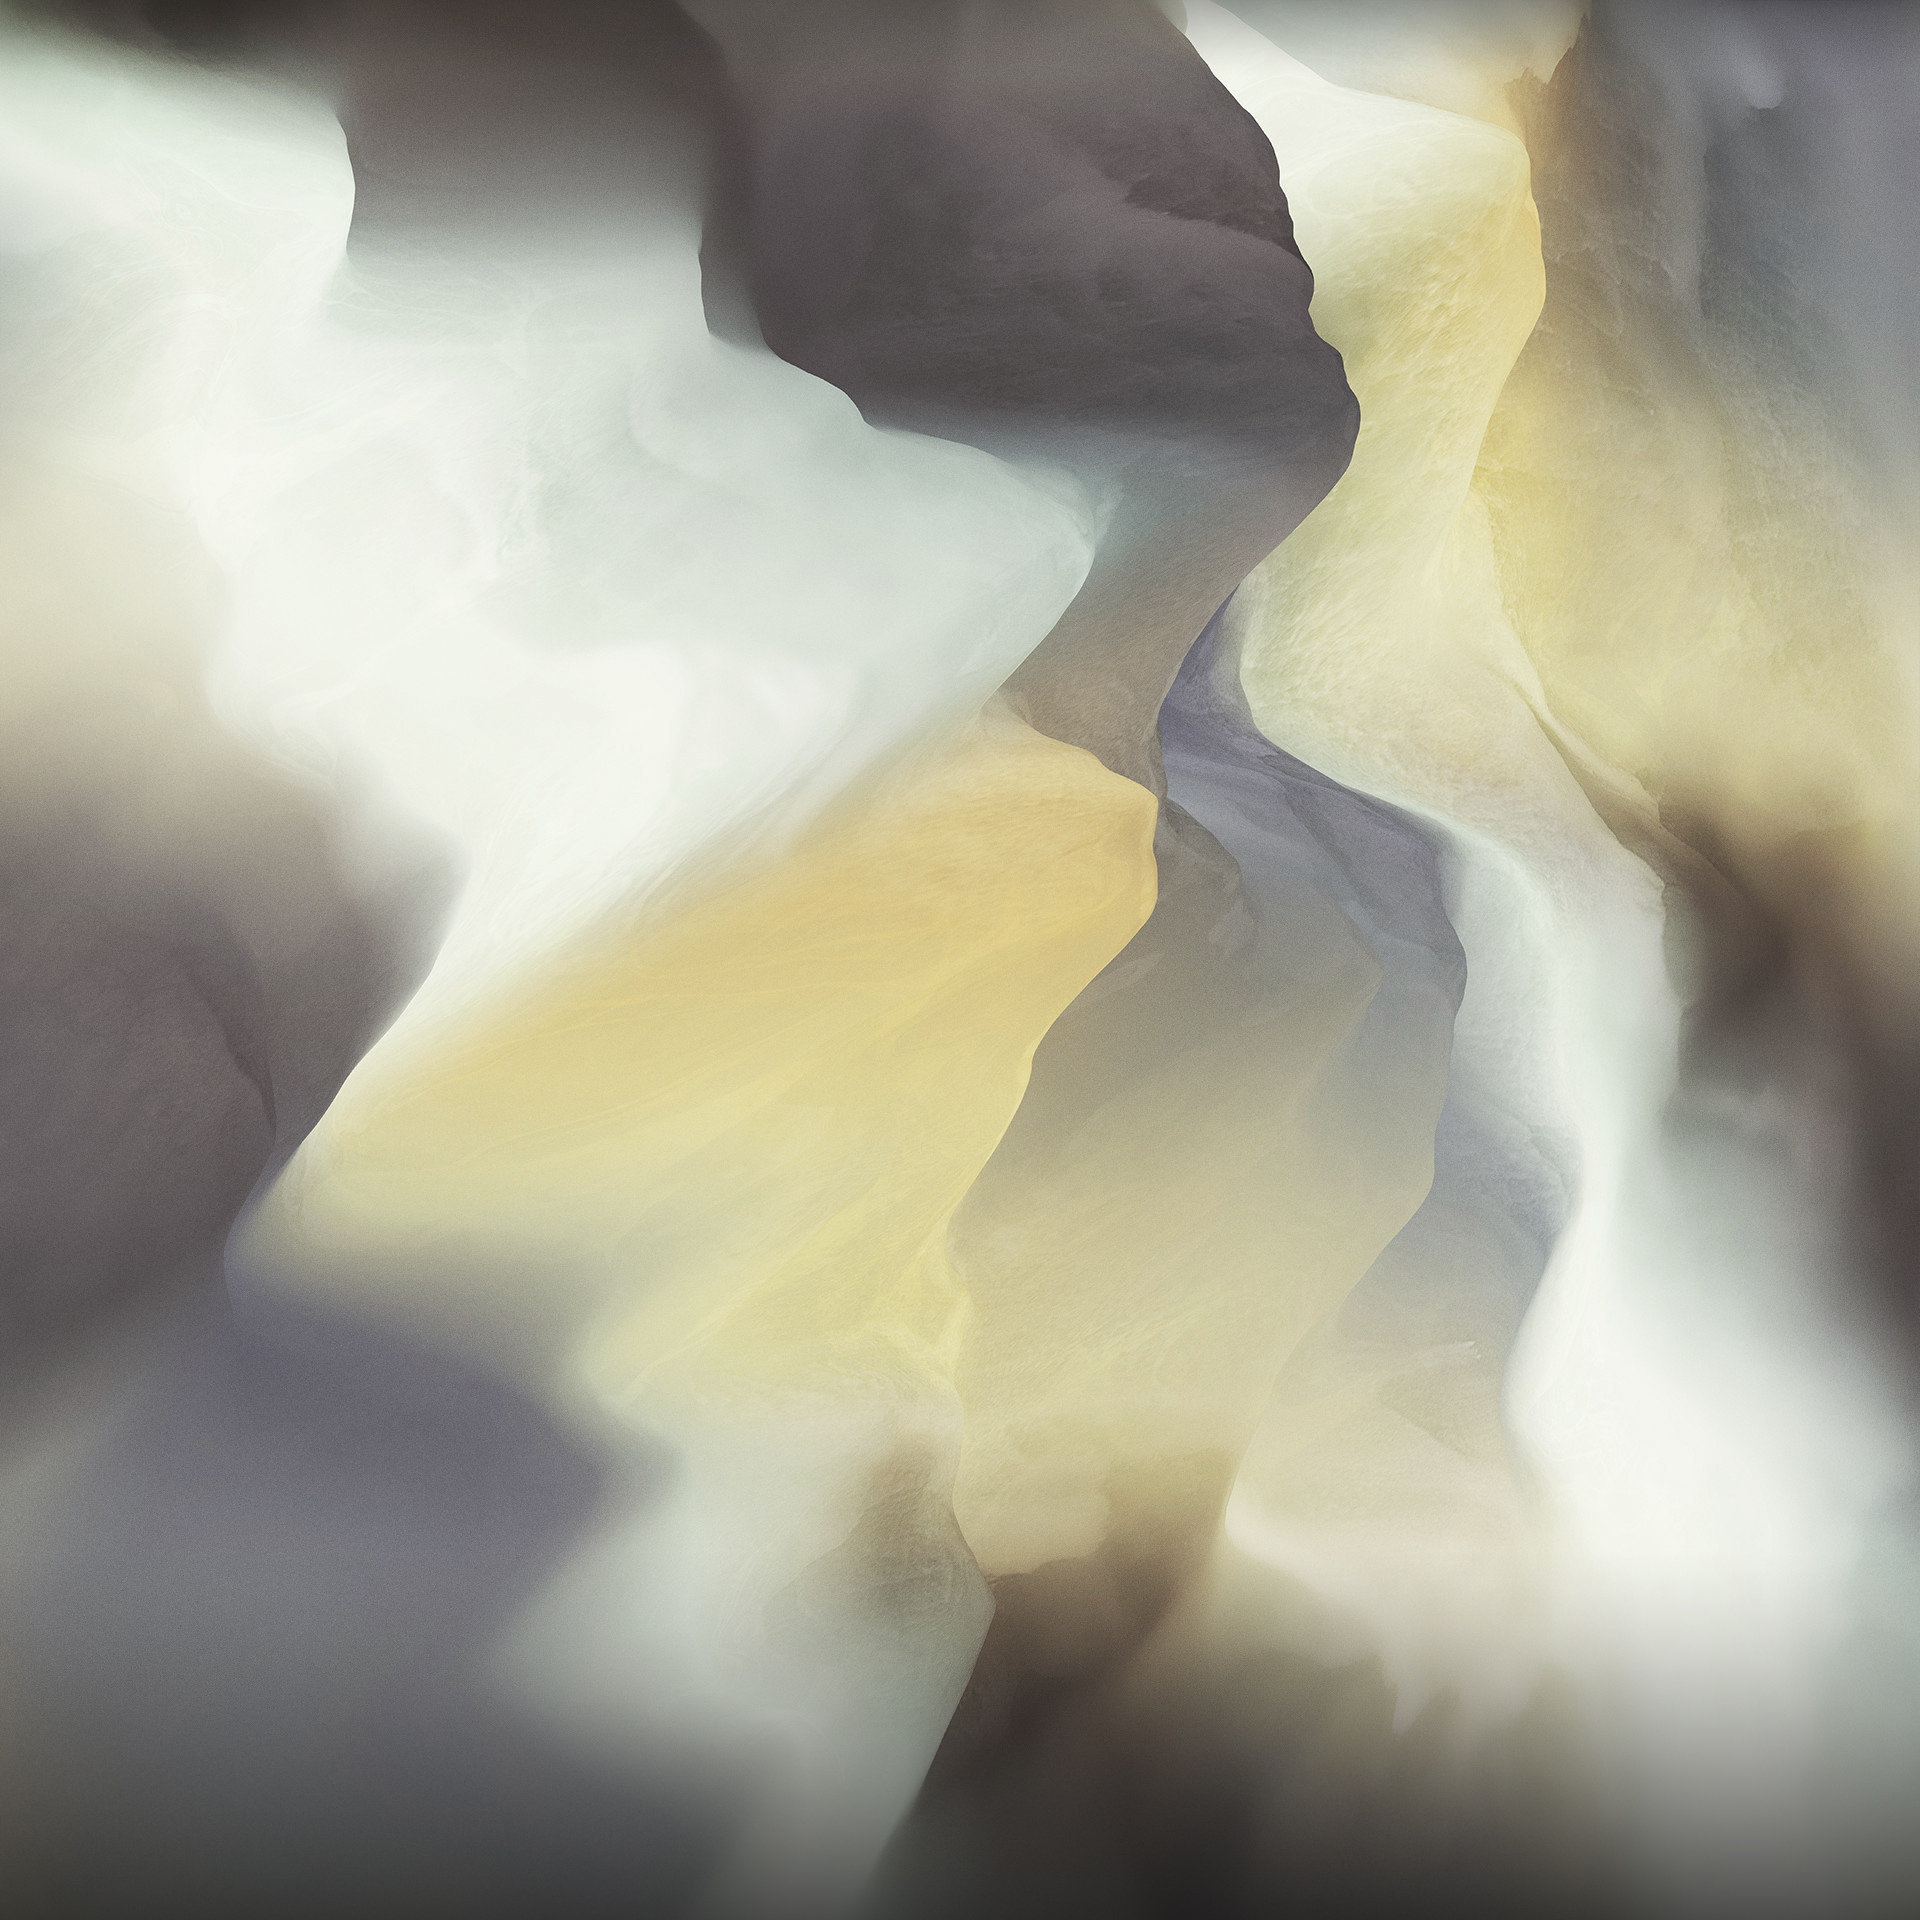 misty_mountains OnePlus 2 Wallpapers